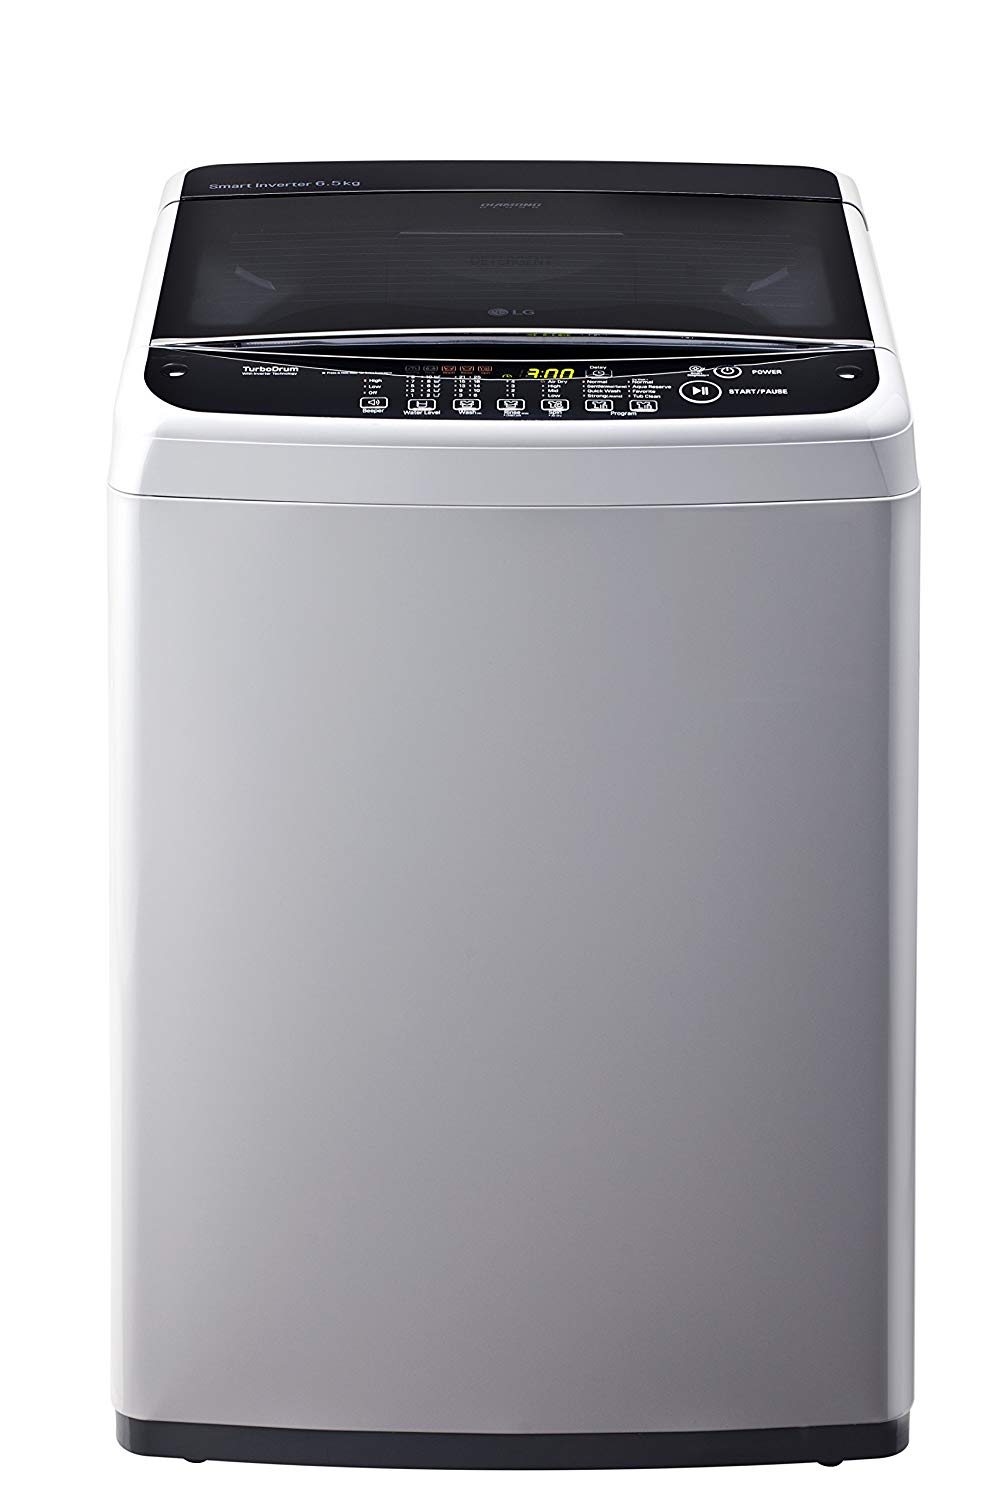 LG 6.5 kg Inverter Fully-Automatic Top Loading Washing ...